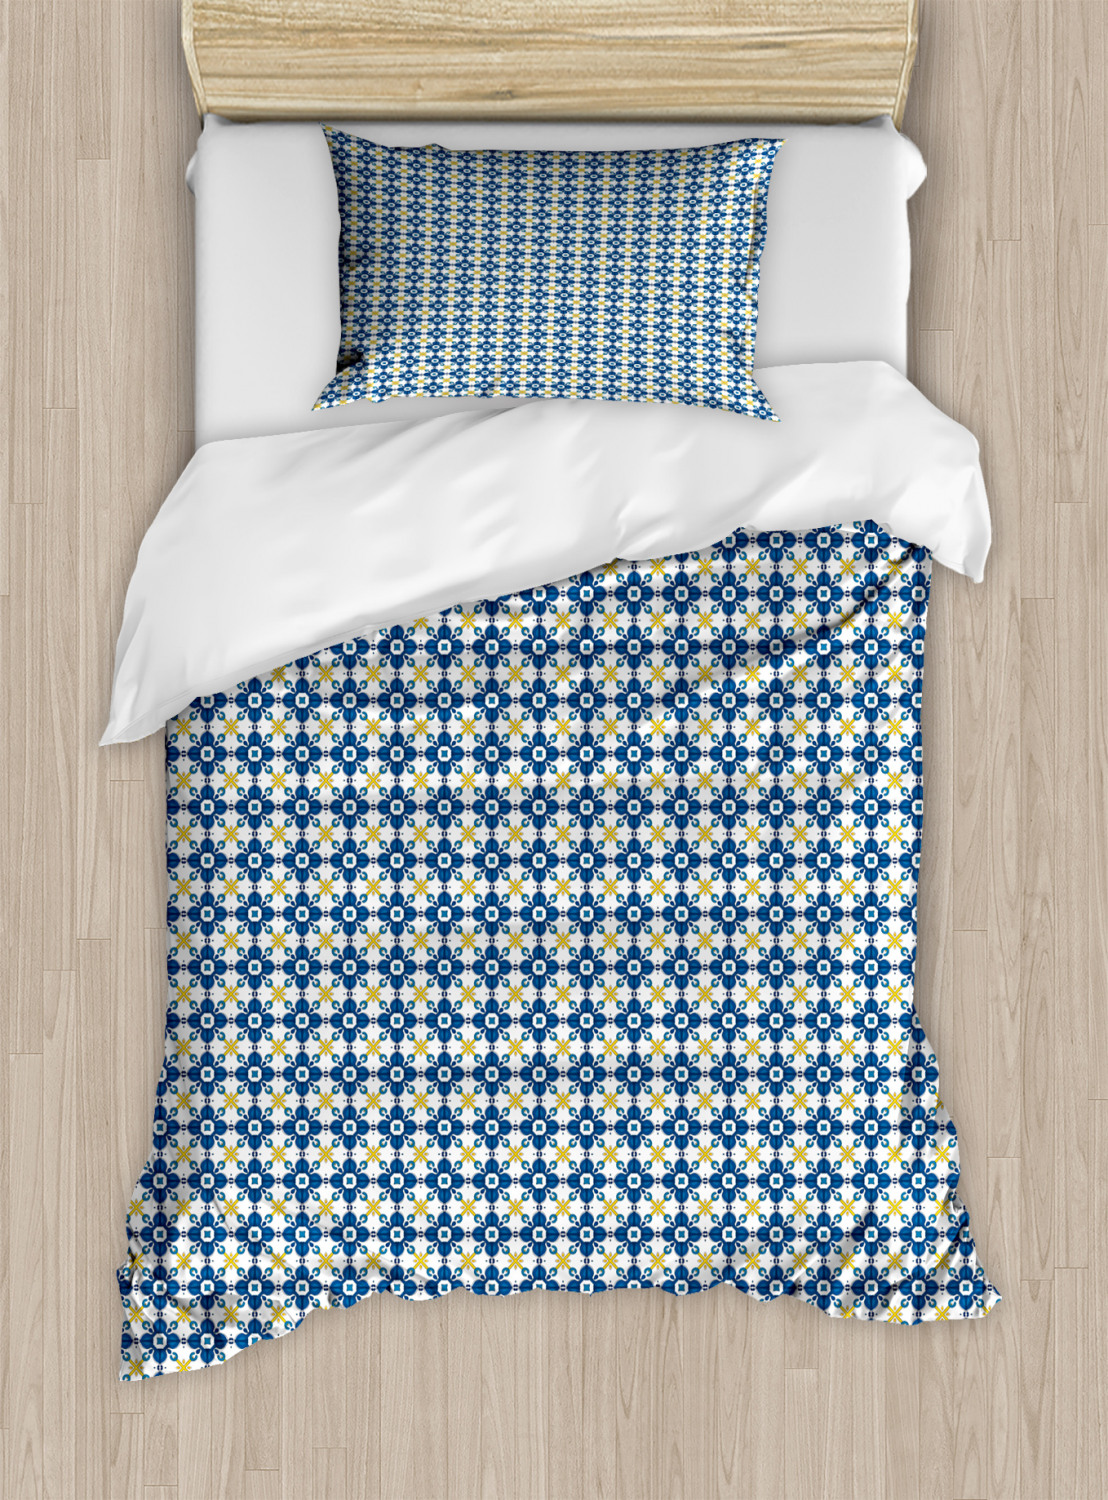 Timeless-Oriental-Duvet-Cover-Set-Twin-Queen-King-Sizes-with-Pillow-Shams thumbnail 64